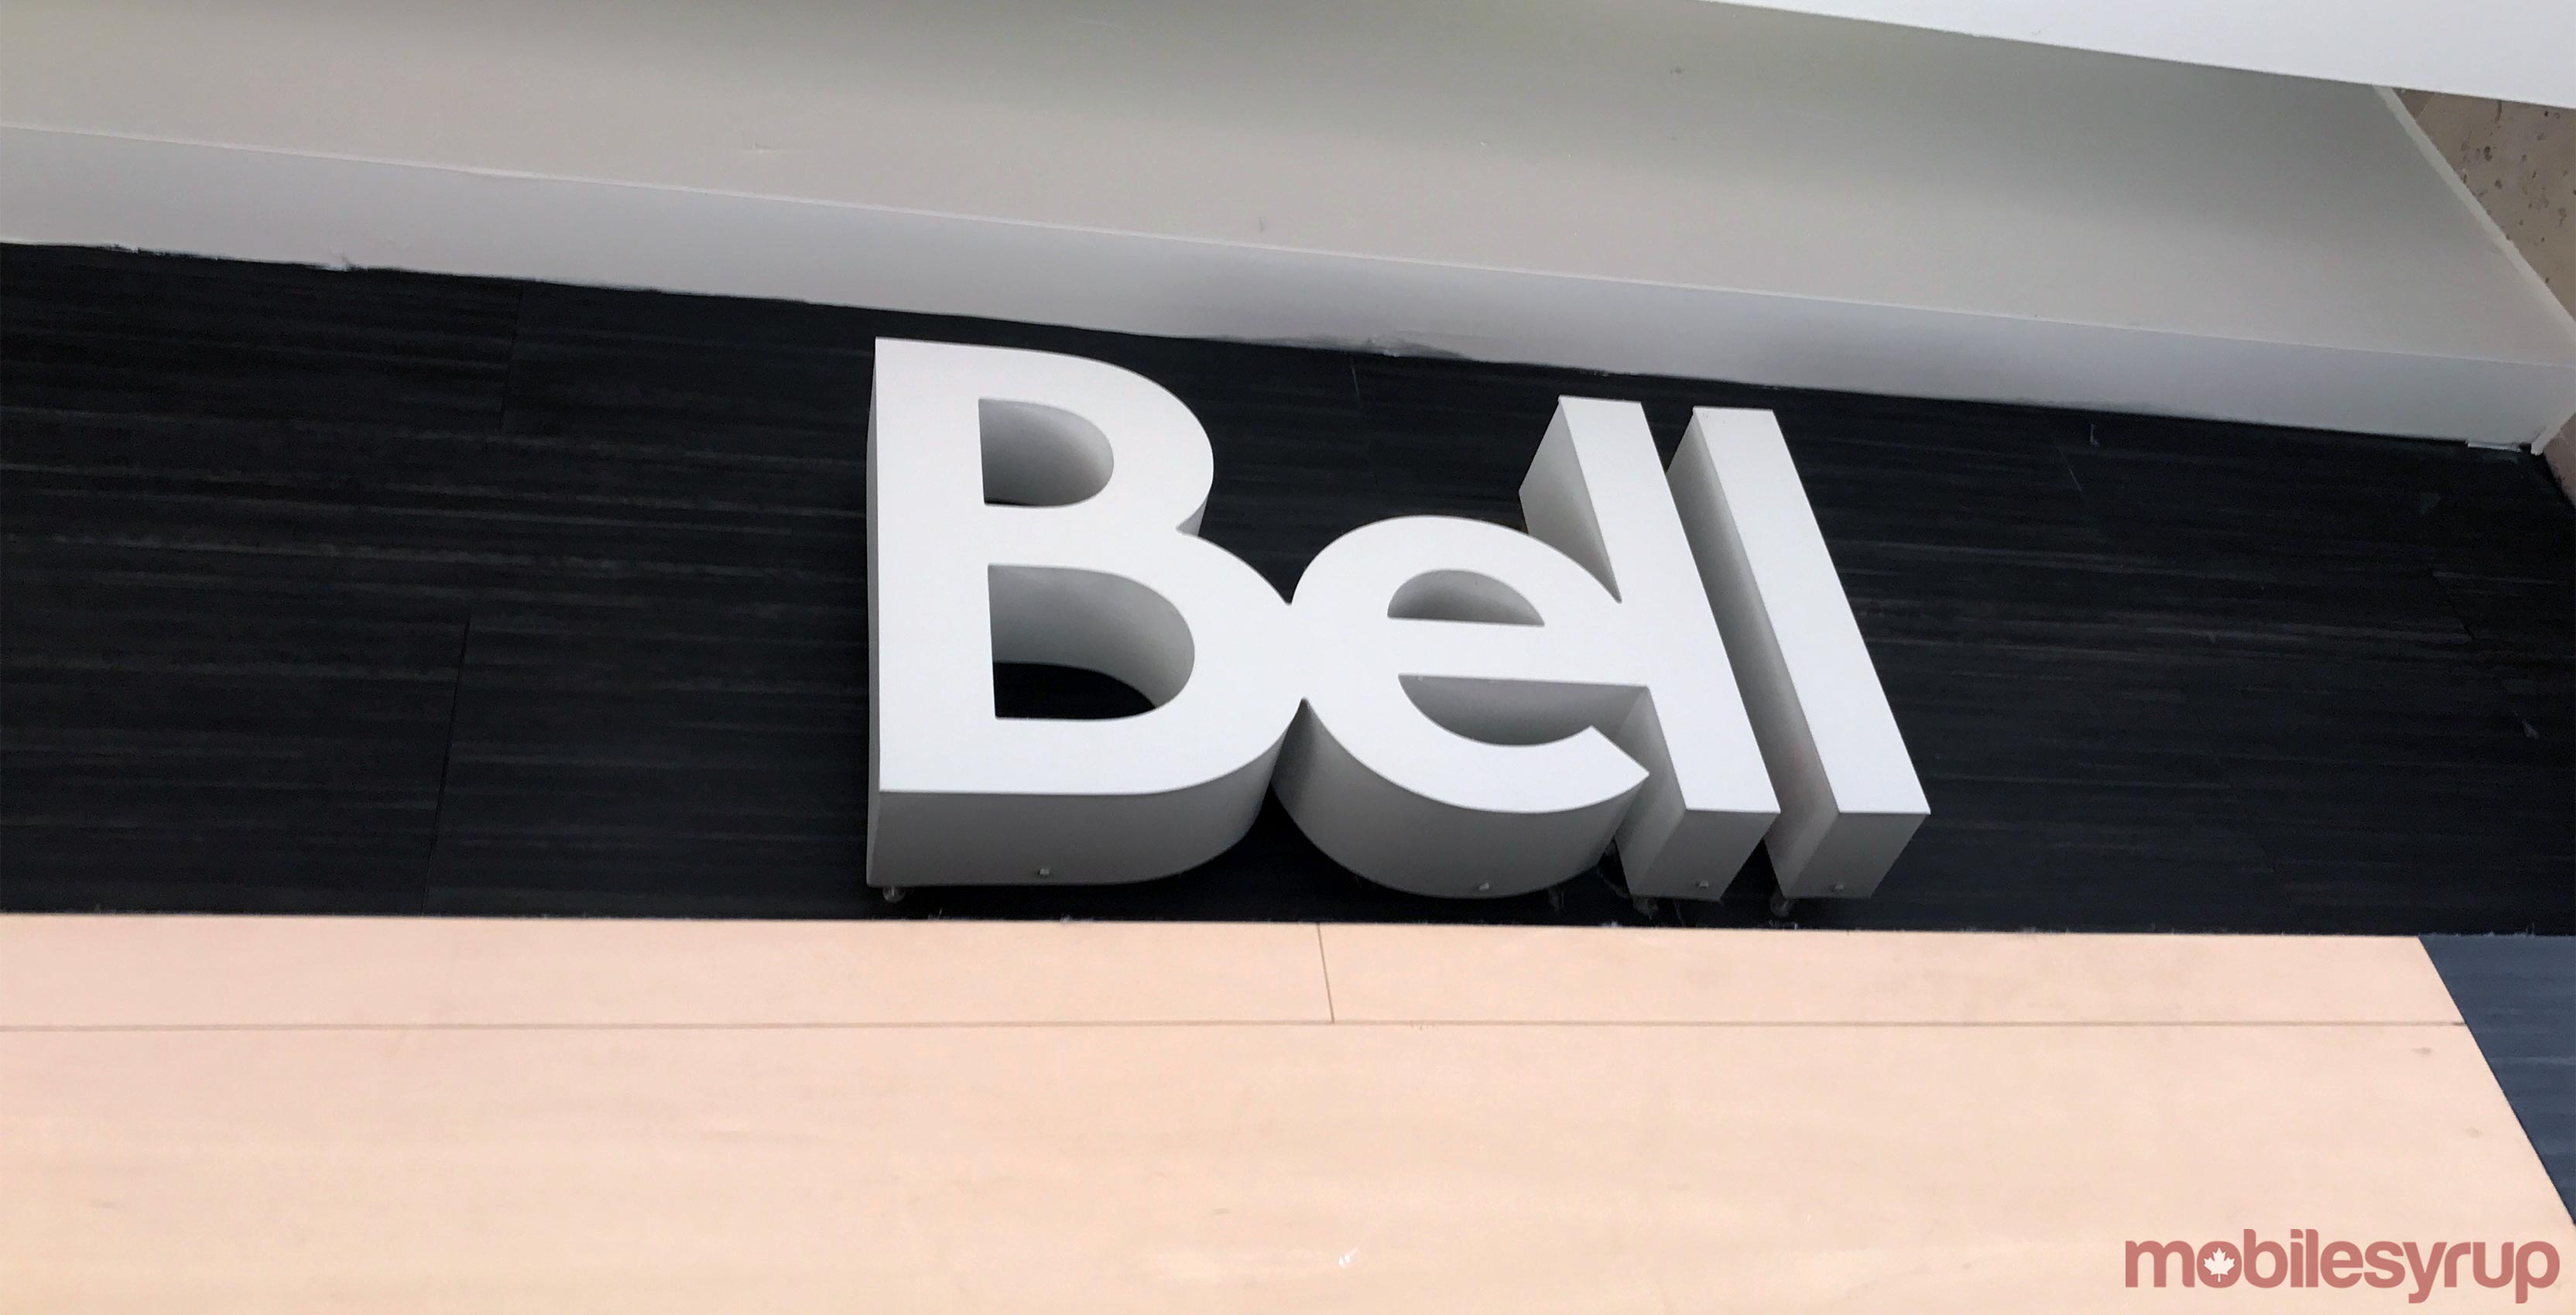 Bell logo on wall